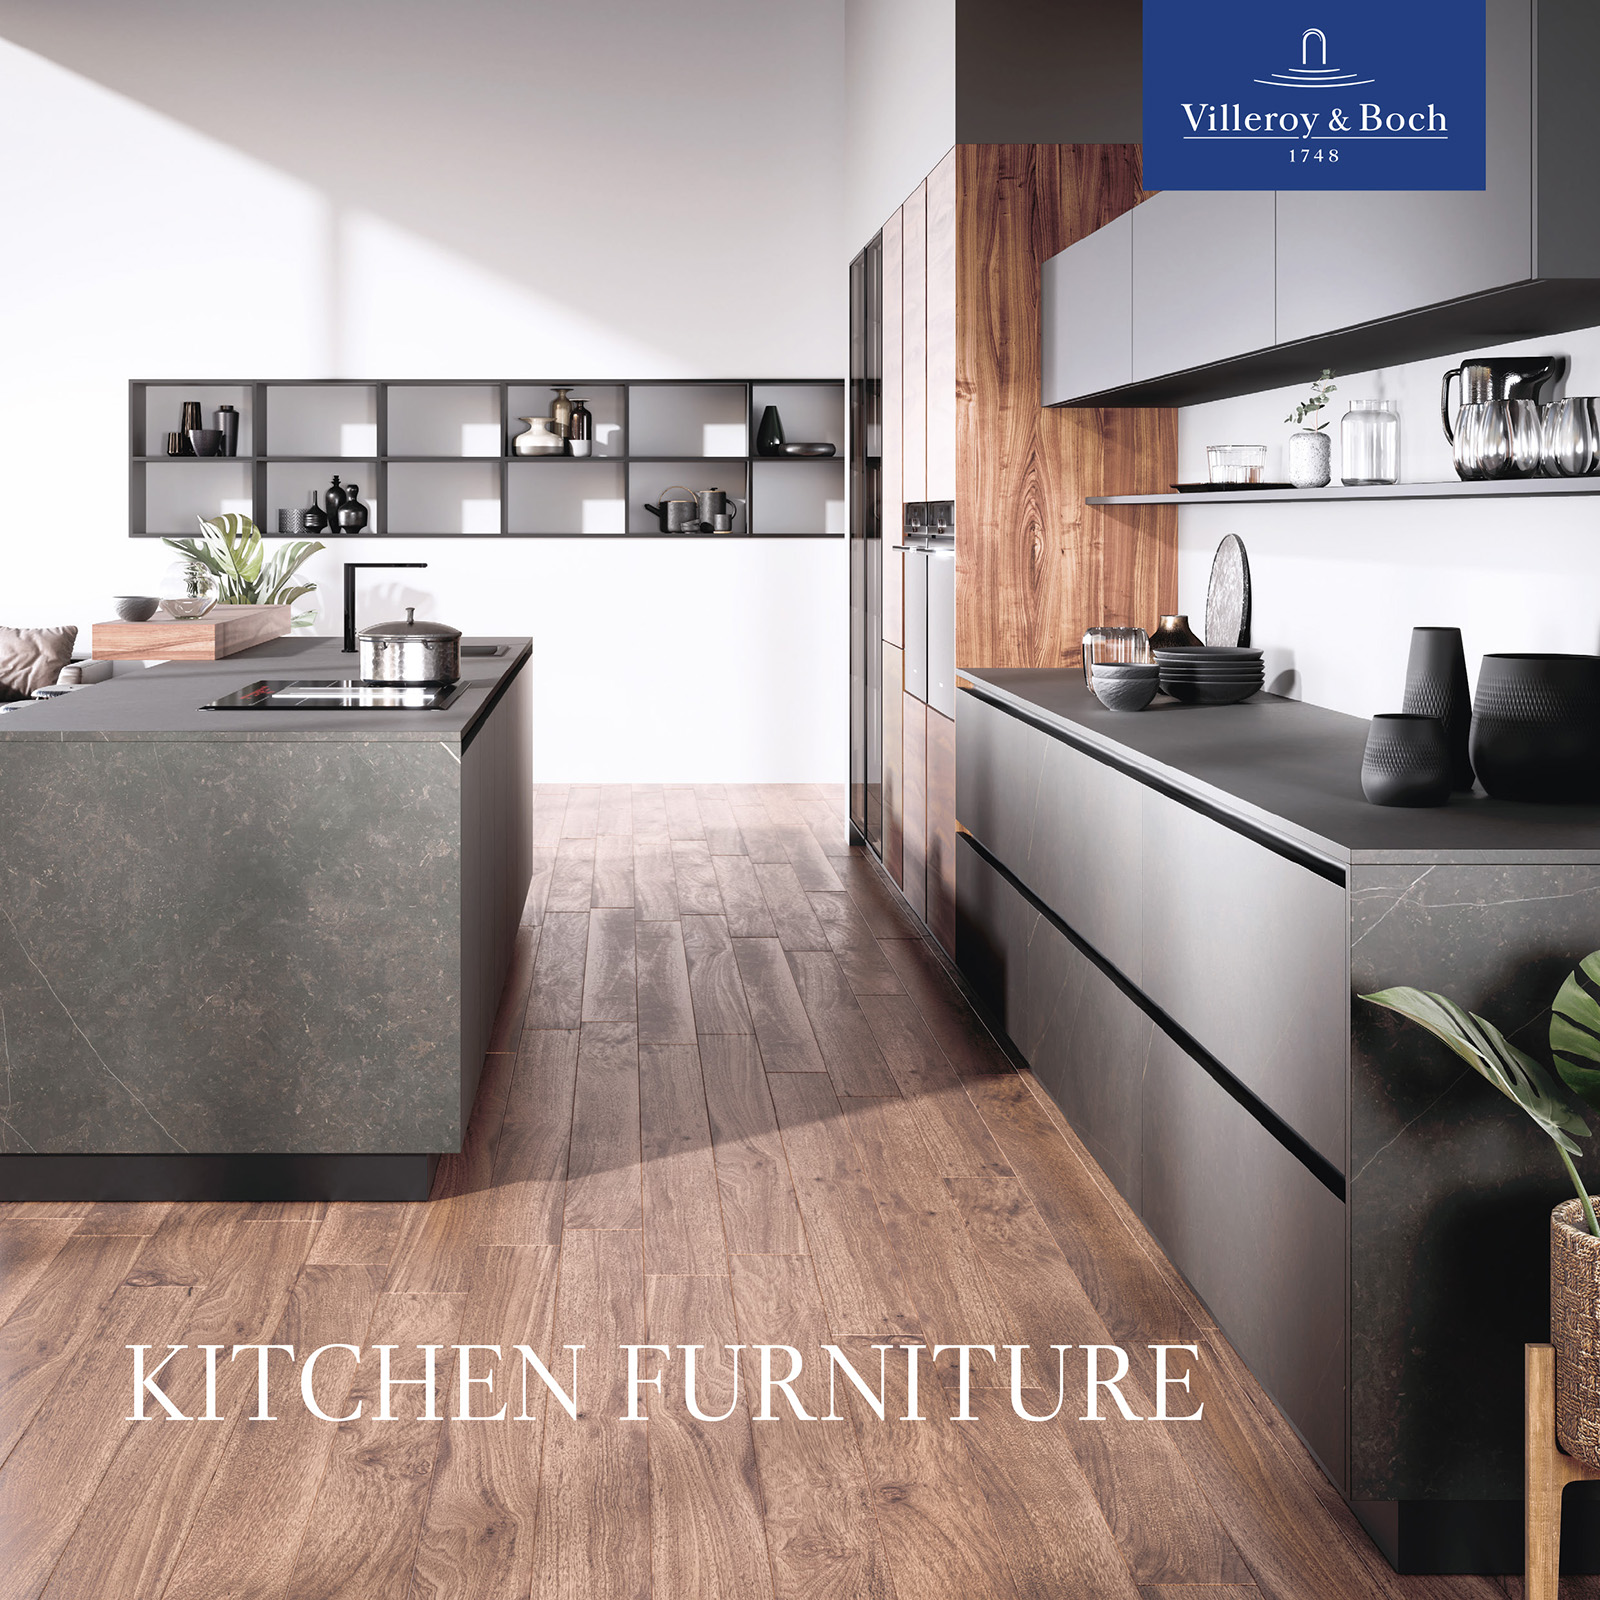 Villeroy & Boch Kitchens launches new Finest collection brochure